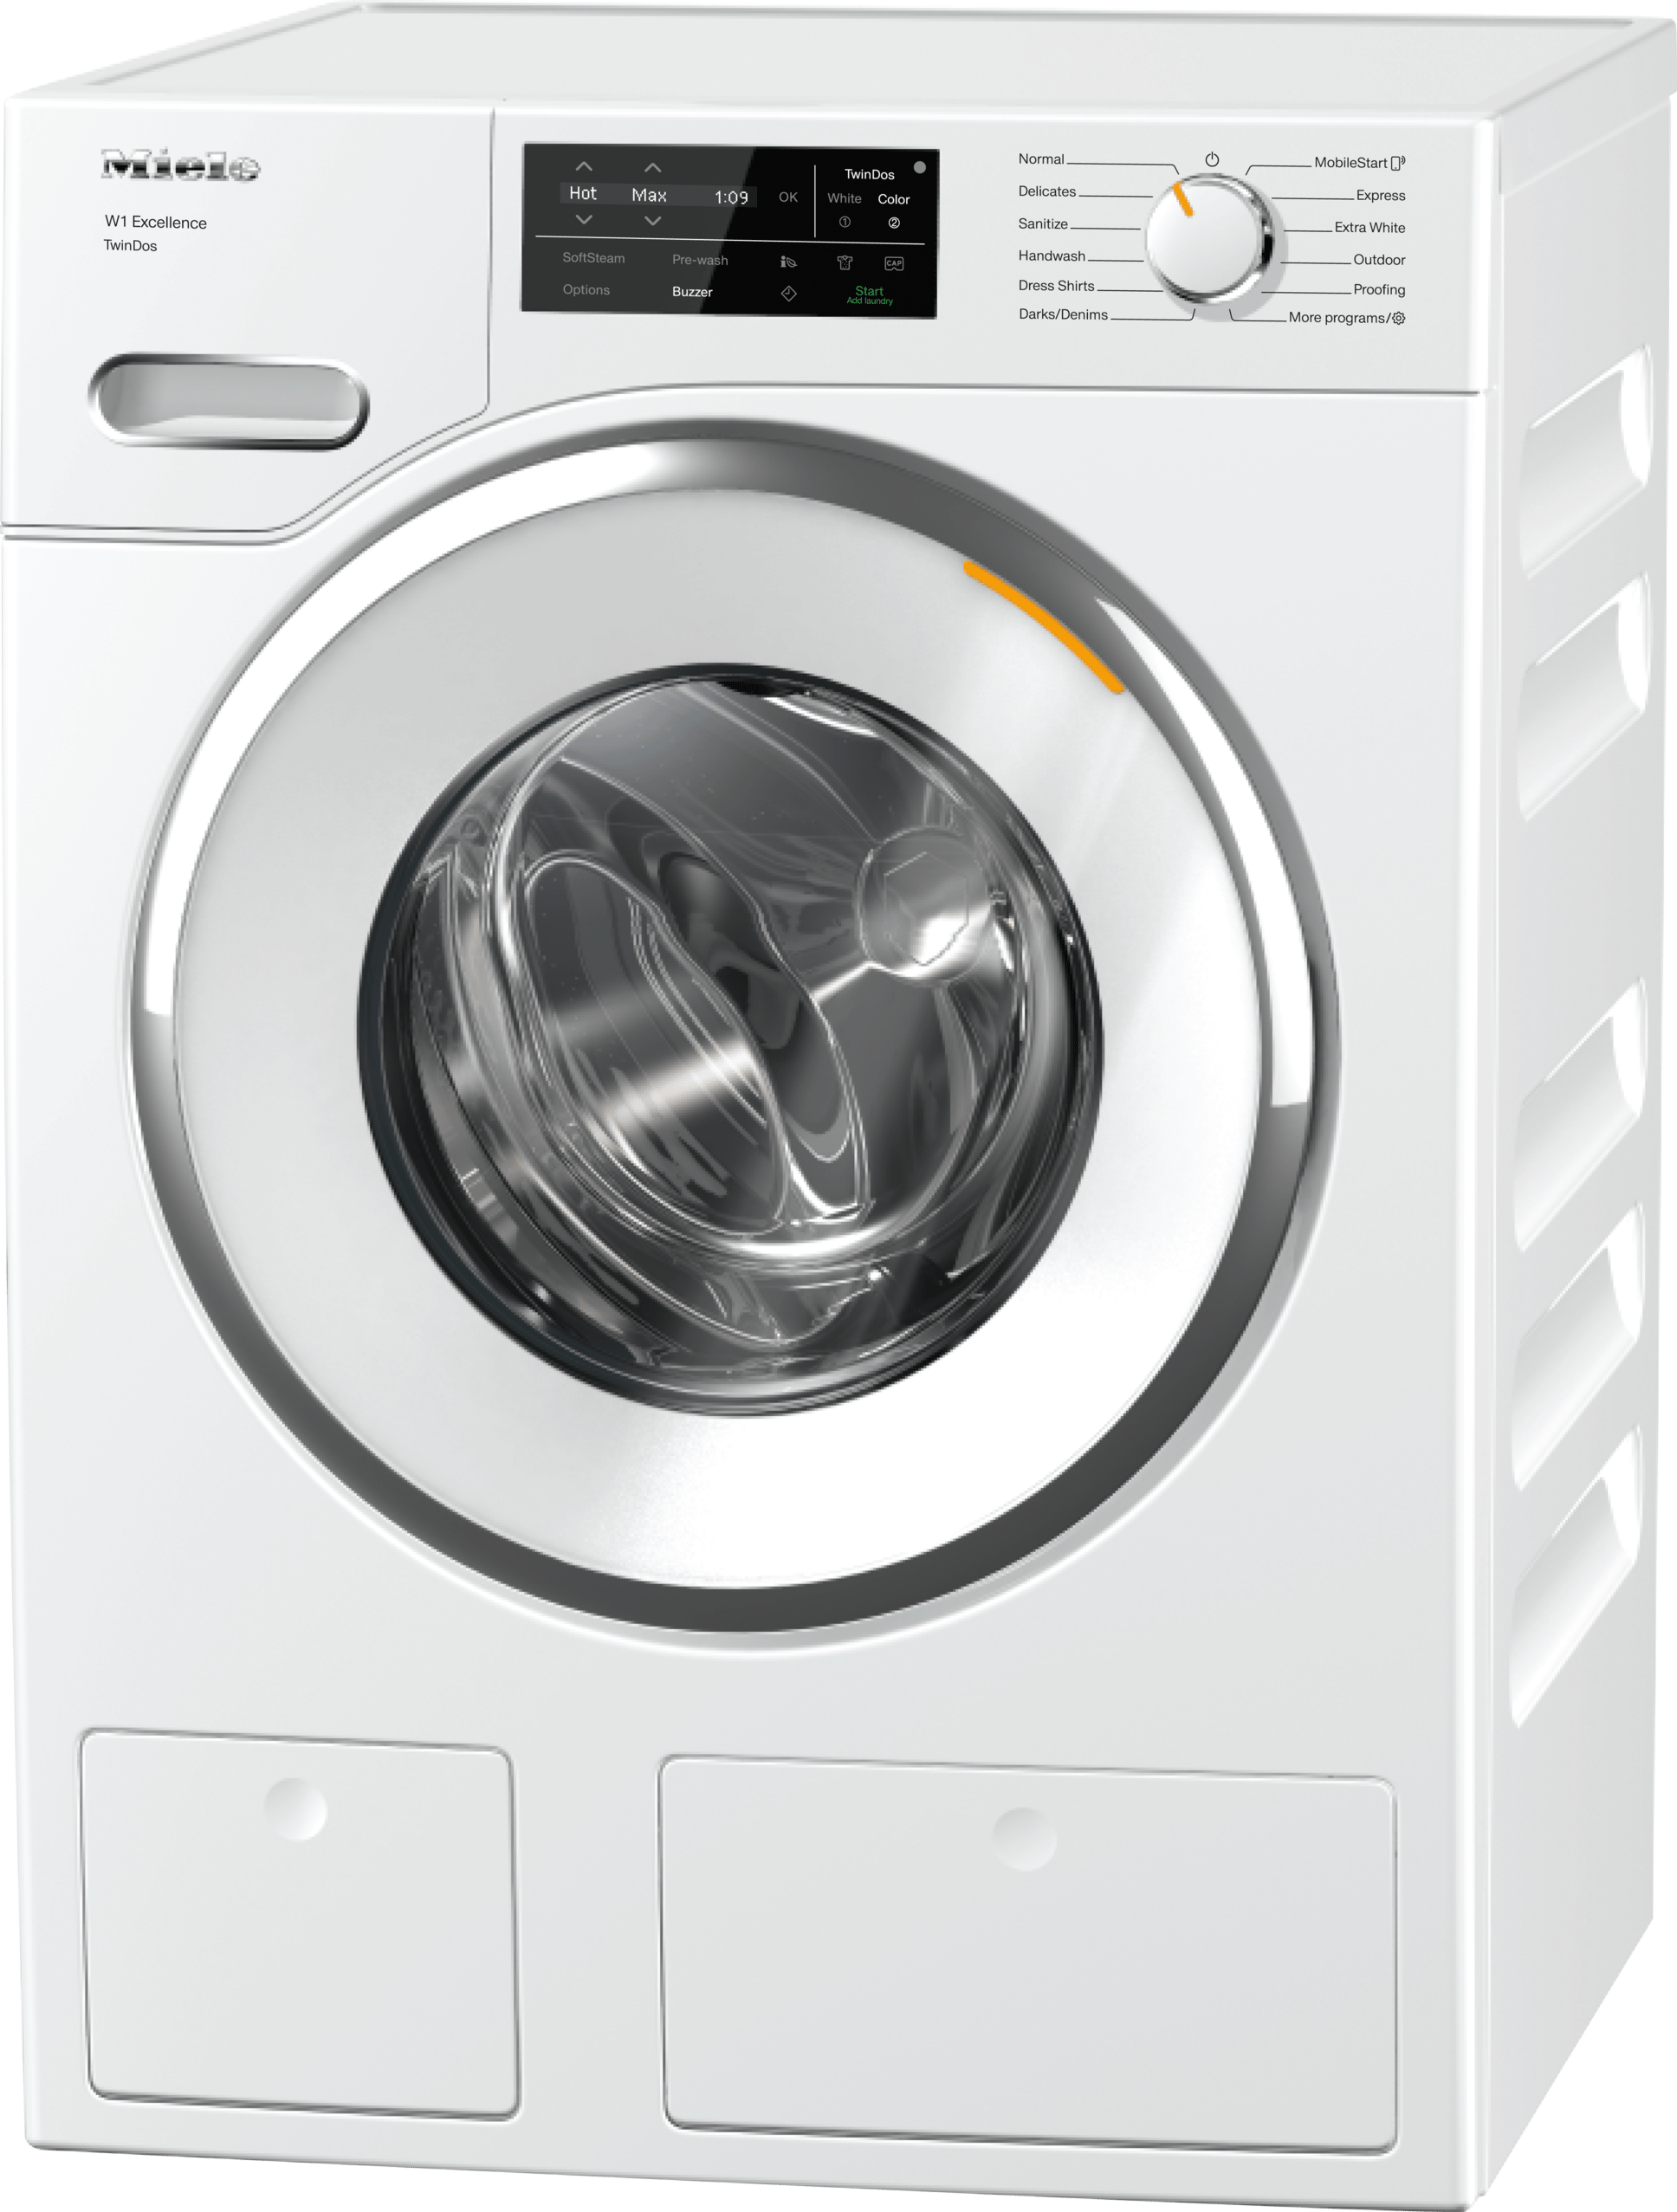 WXF 660 WCS TDos - W1 Front-loading washing machine with TwinDos and Miele@home for smart laundry care and maximum convenience.